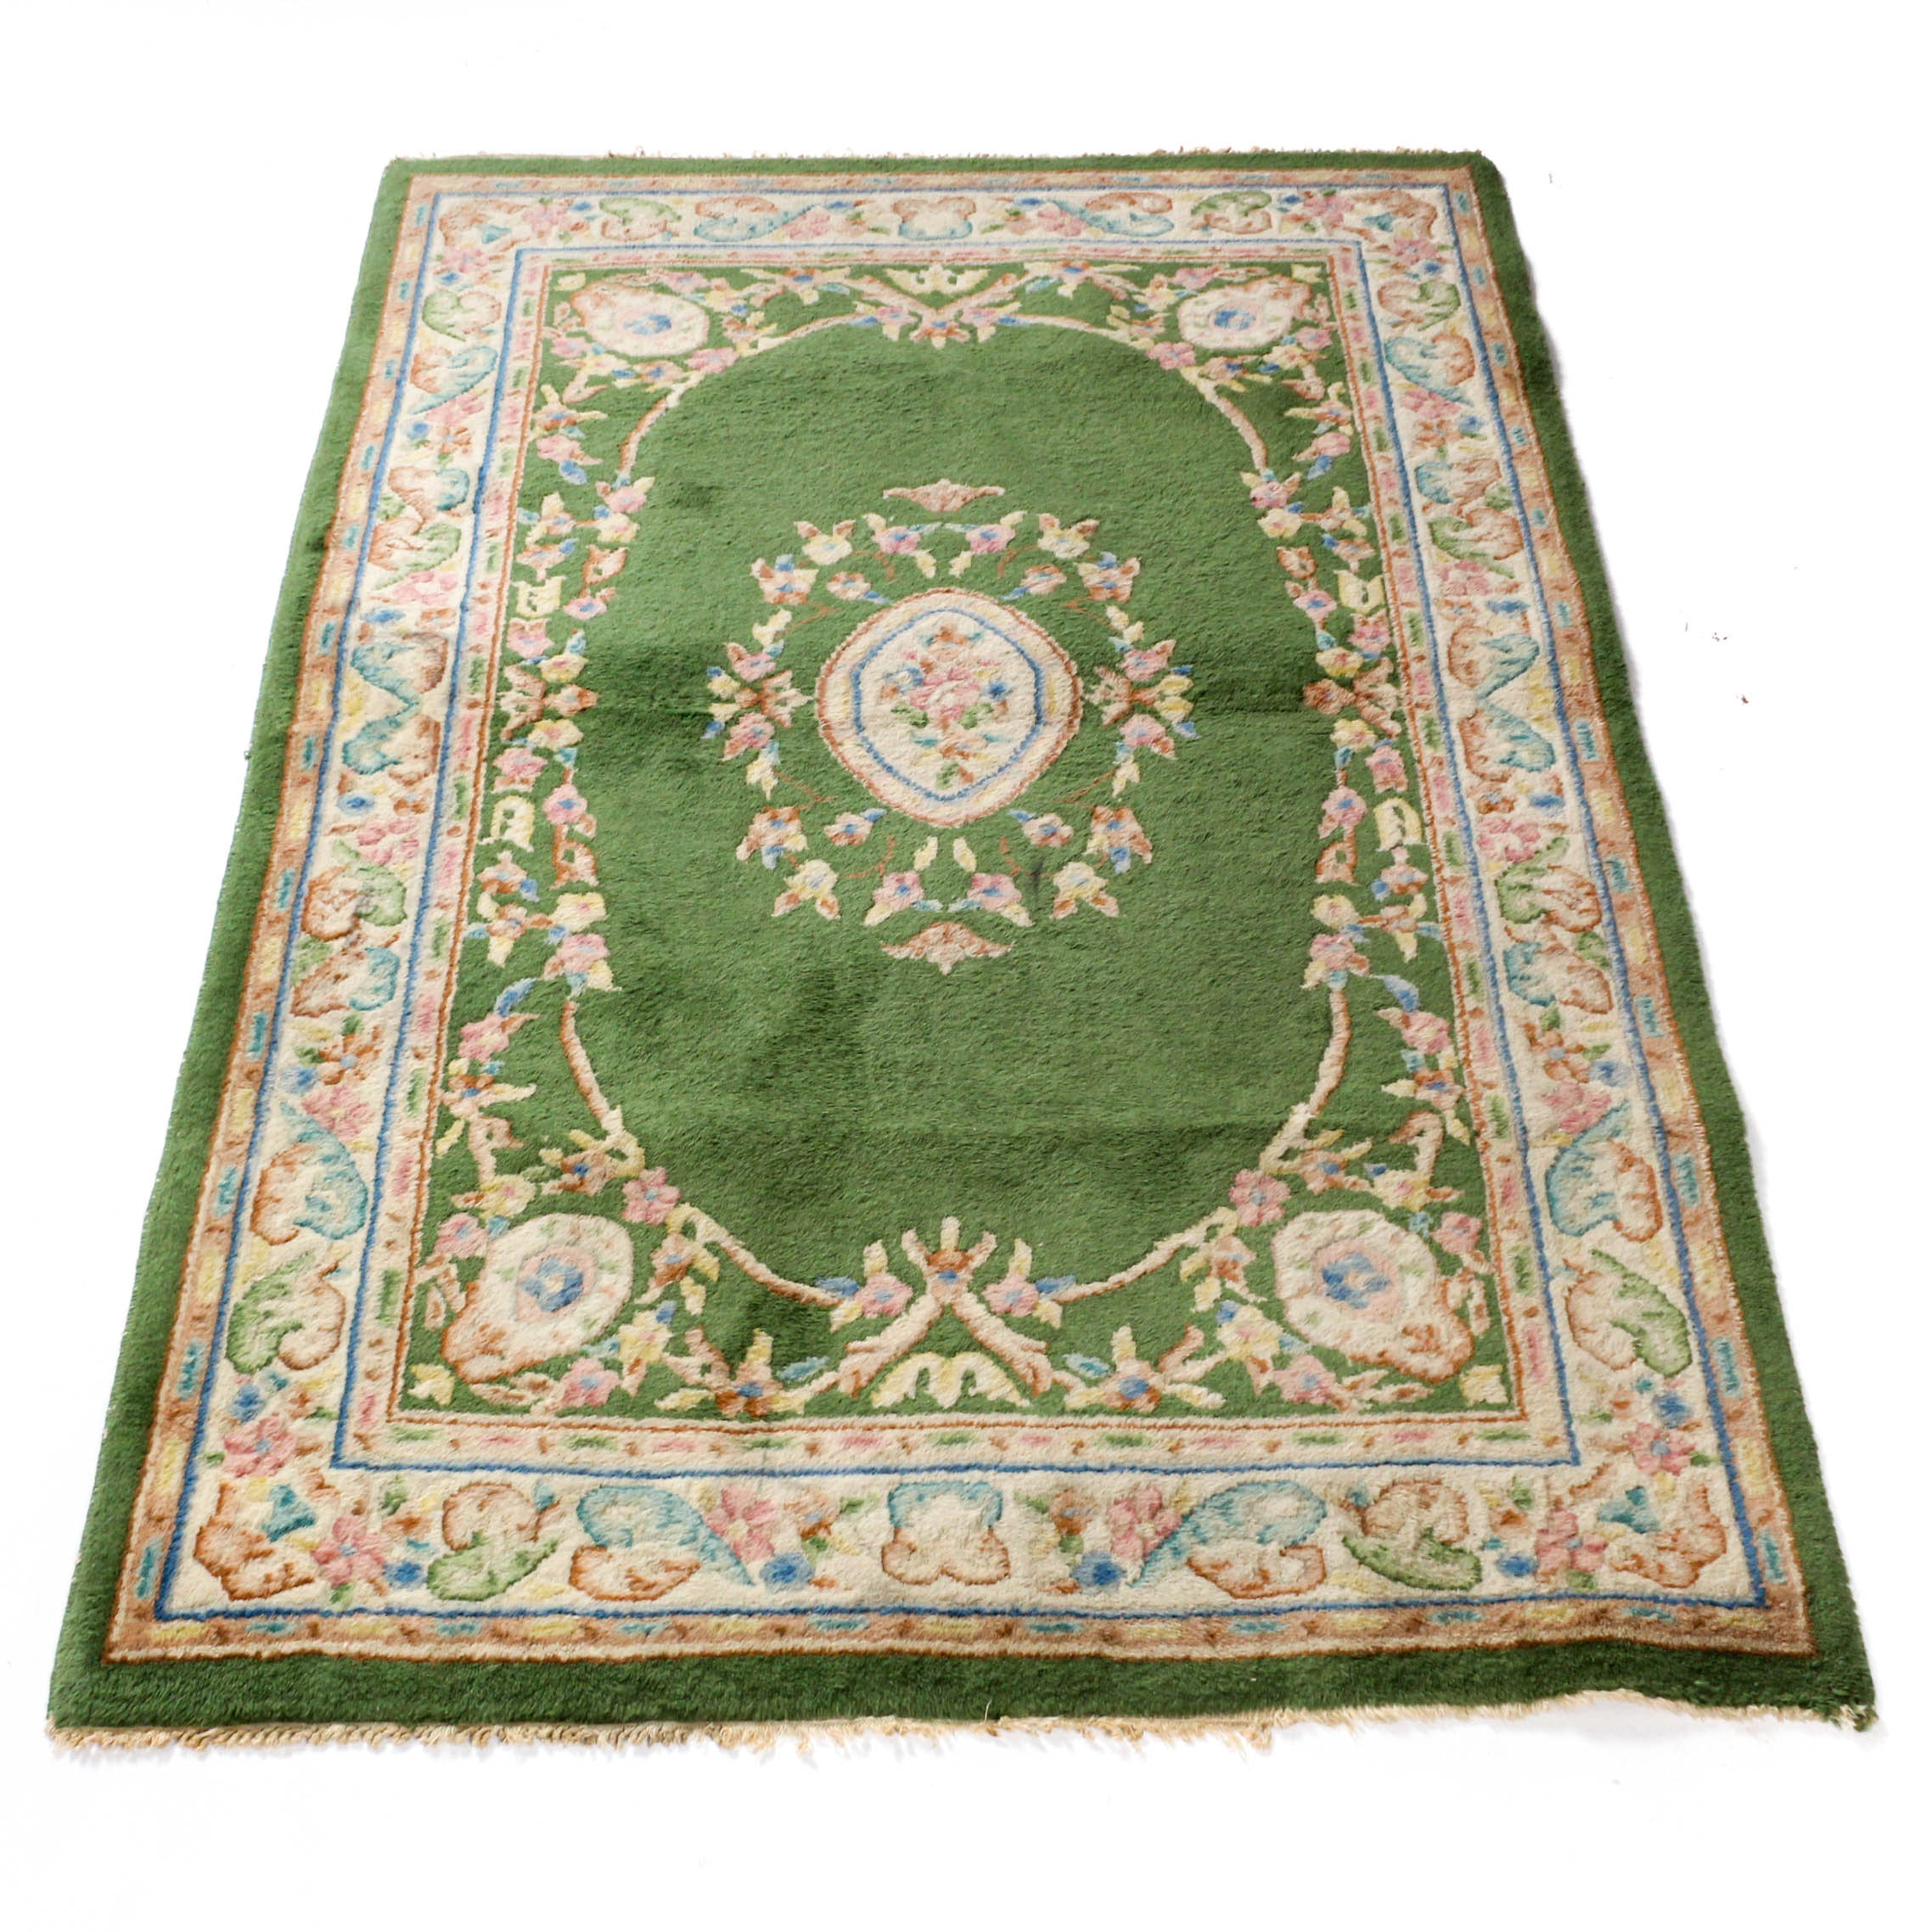 Semi-Antique Hand Knotted Indo-French Aubusson Rug